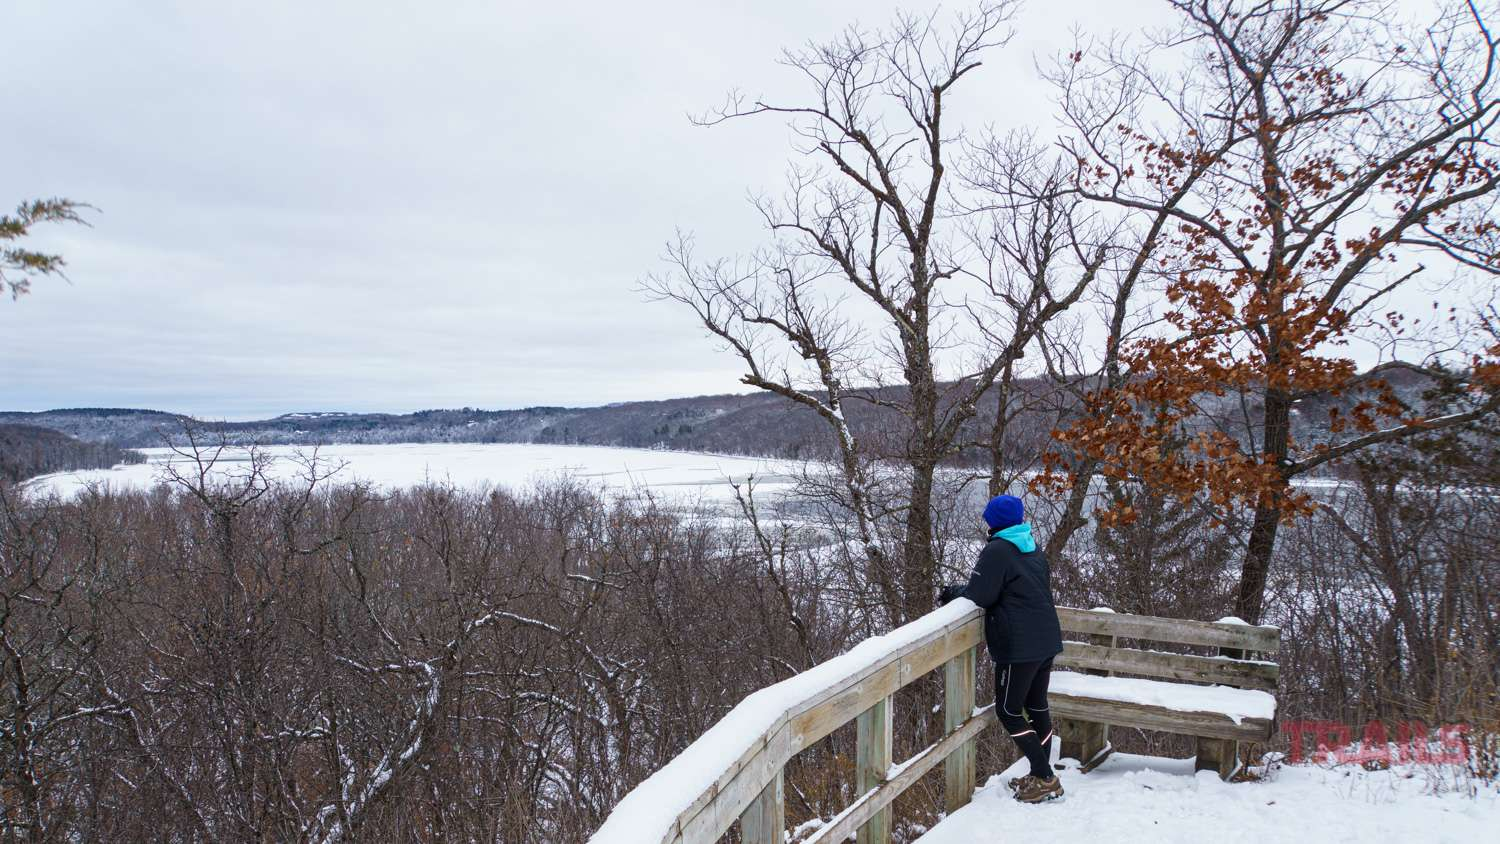 Scenic winter view of the St. Croix River at Afton State Park